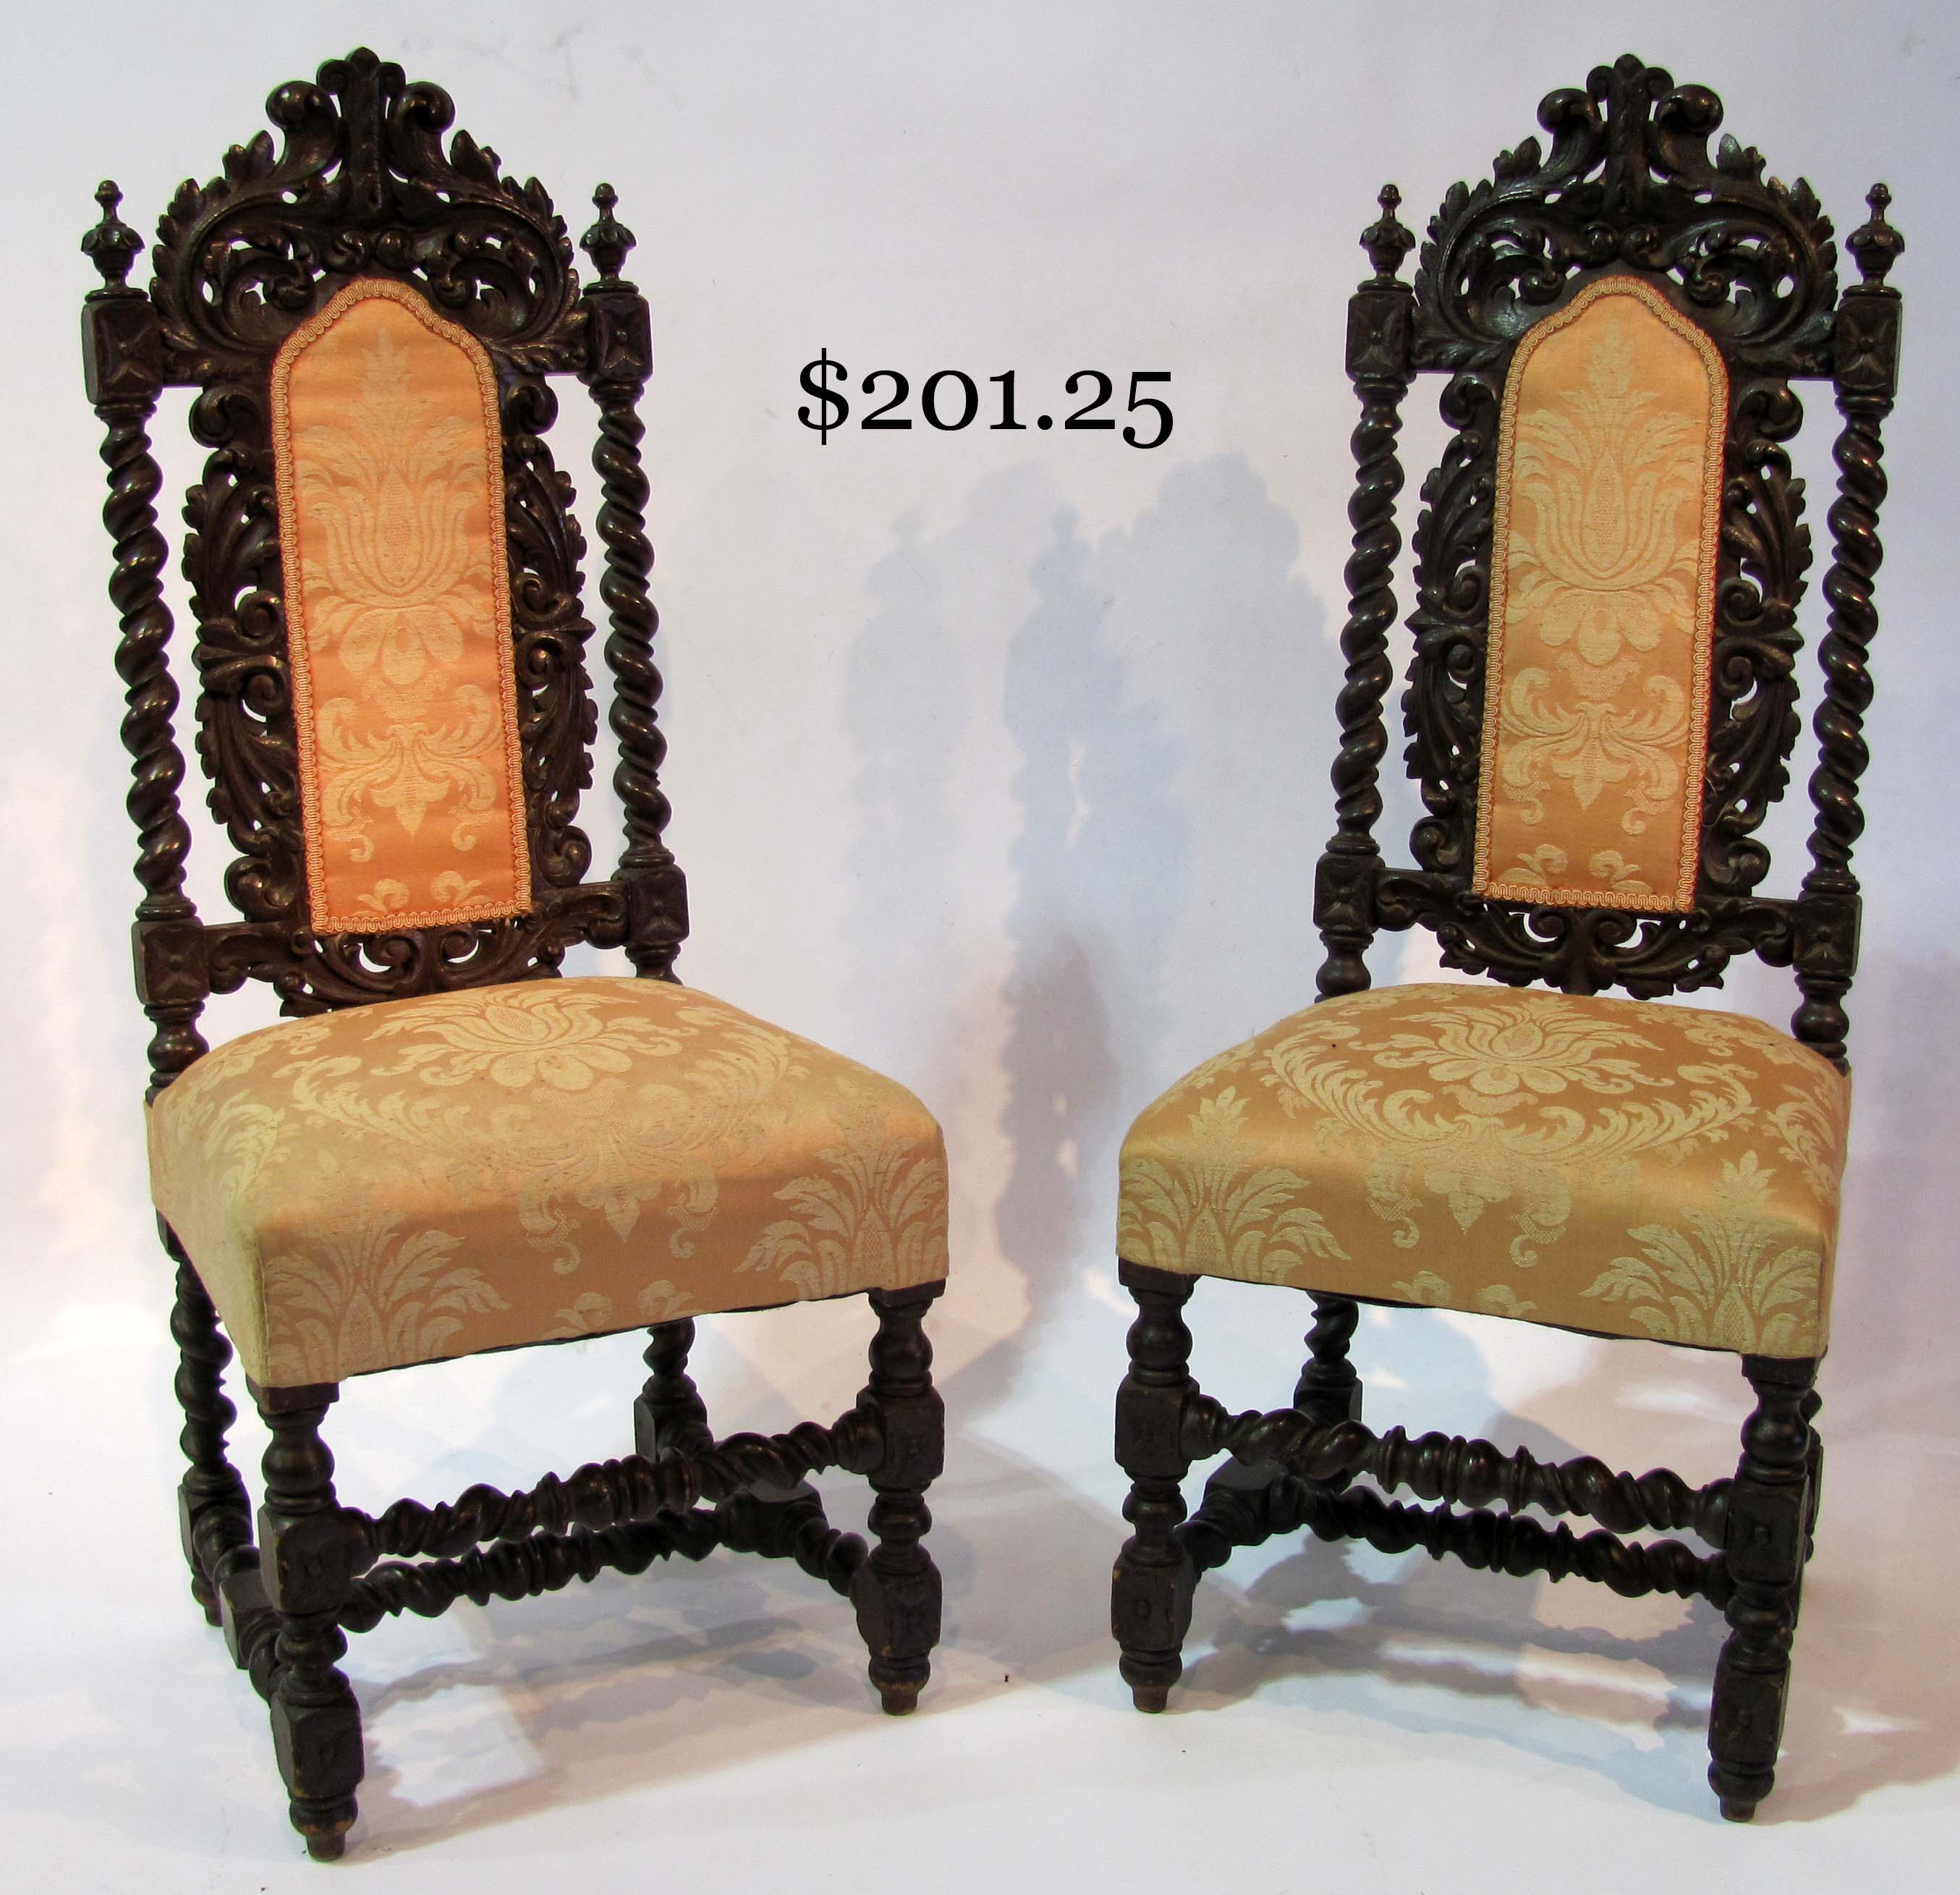 Pair Of Early 20th Century Carved Birch Chairs Edwardian (1901-1910)